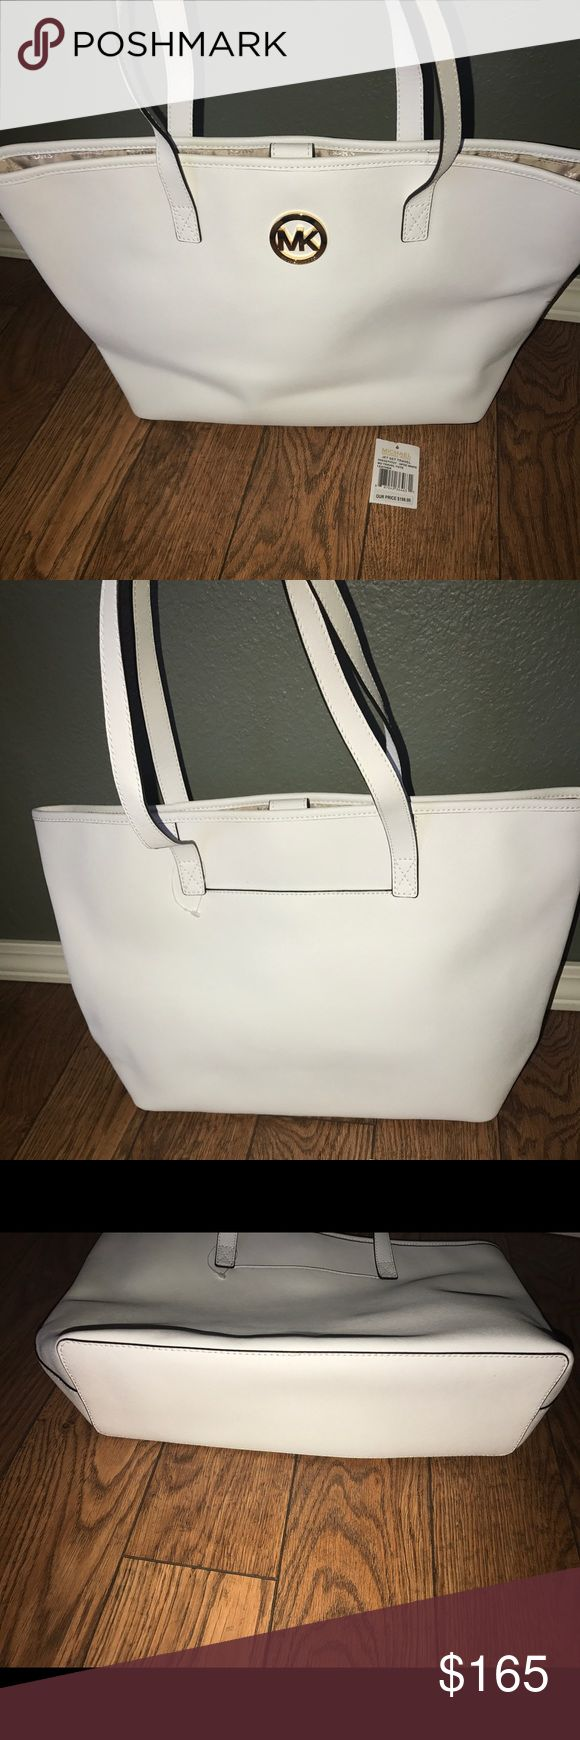 Michael Kors Jet Set Tote Authentic Michael Kors Jet Set Travel Tote! Great bag with lots of room, brand new never carried, tag fell off of the plastic loop. No rips, stains, tears or marks, comes from a smoke free home. In perfect condition! No trades please, offers welcome Michael Kors Bags Totes